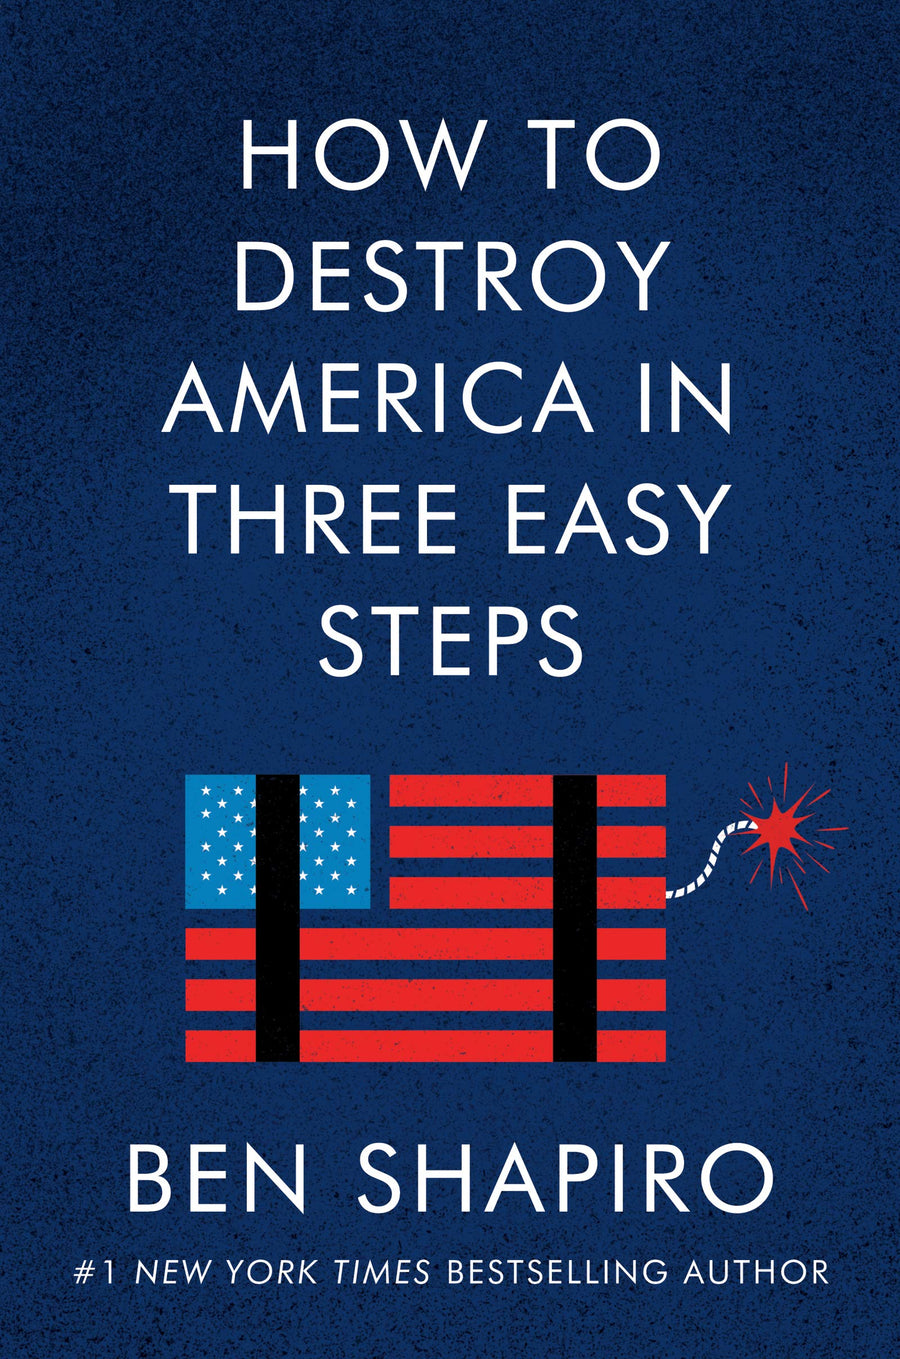 How to Destroy America in Three Easy Steps - Leadership Books